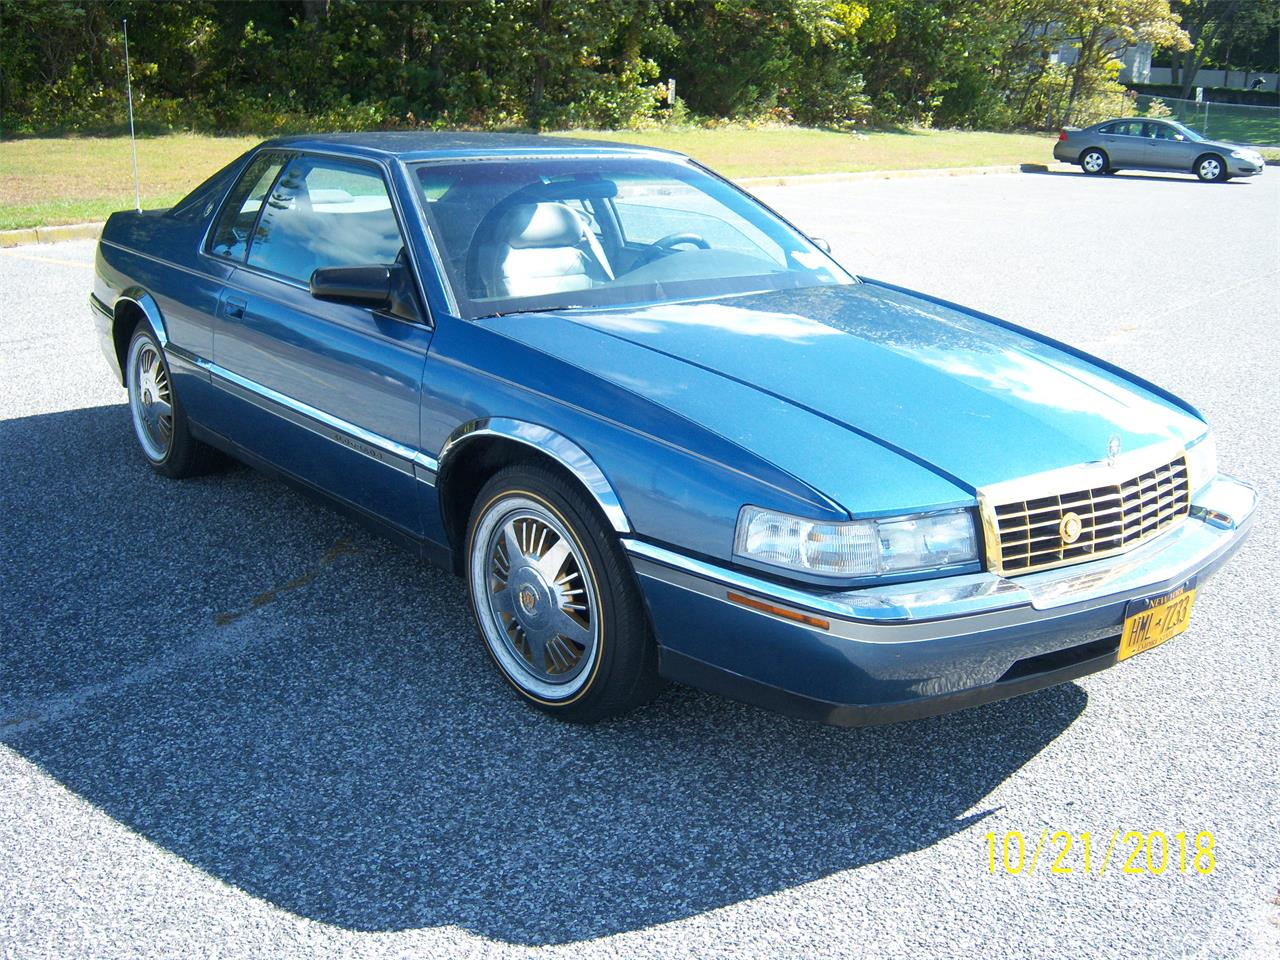 1992 cadillac eldorado for sale in hampton bays ny classiccarsbay com 1992 cadillac eldorado for sale in